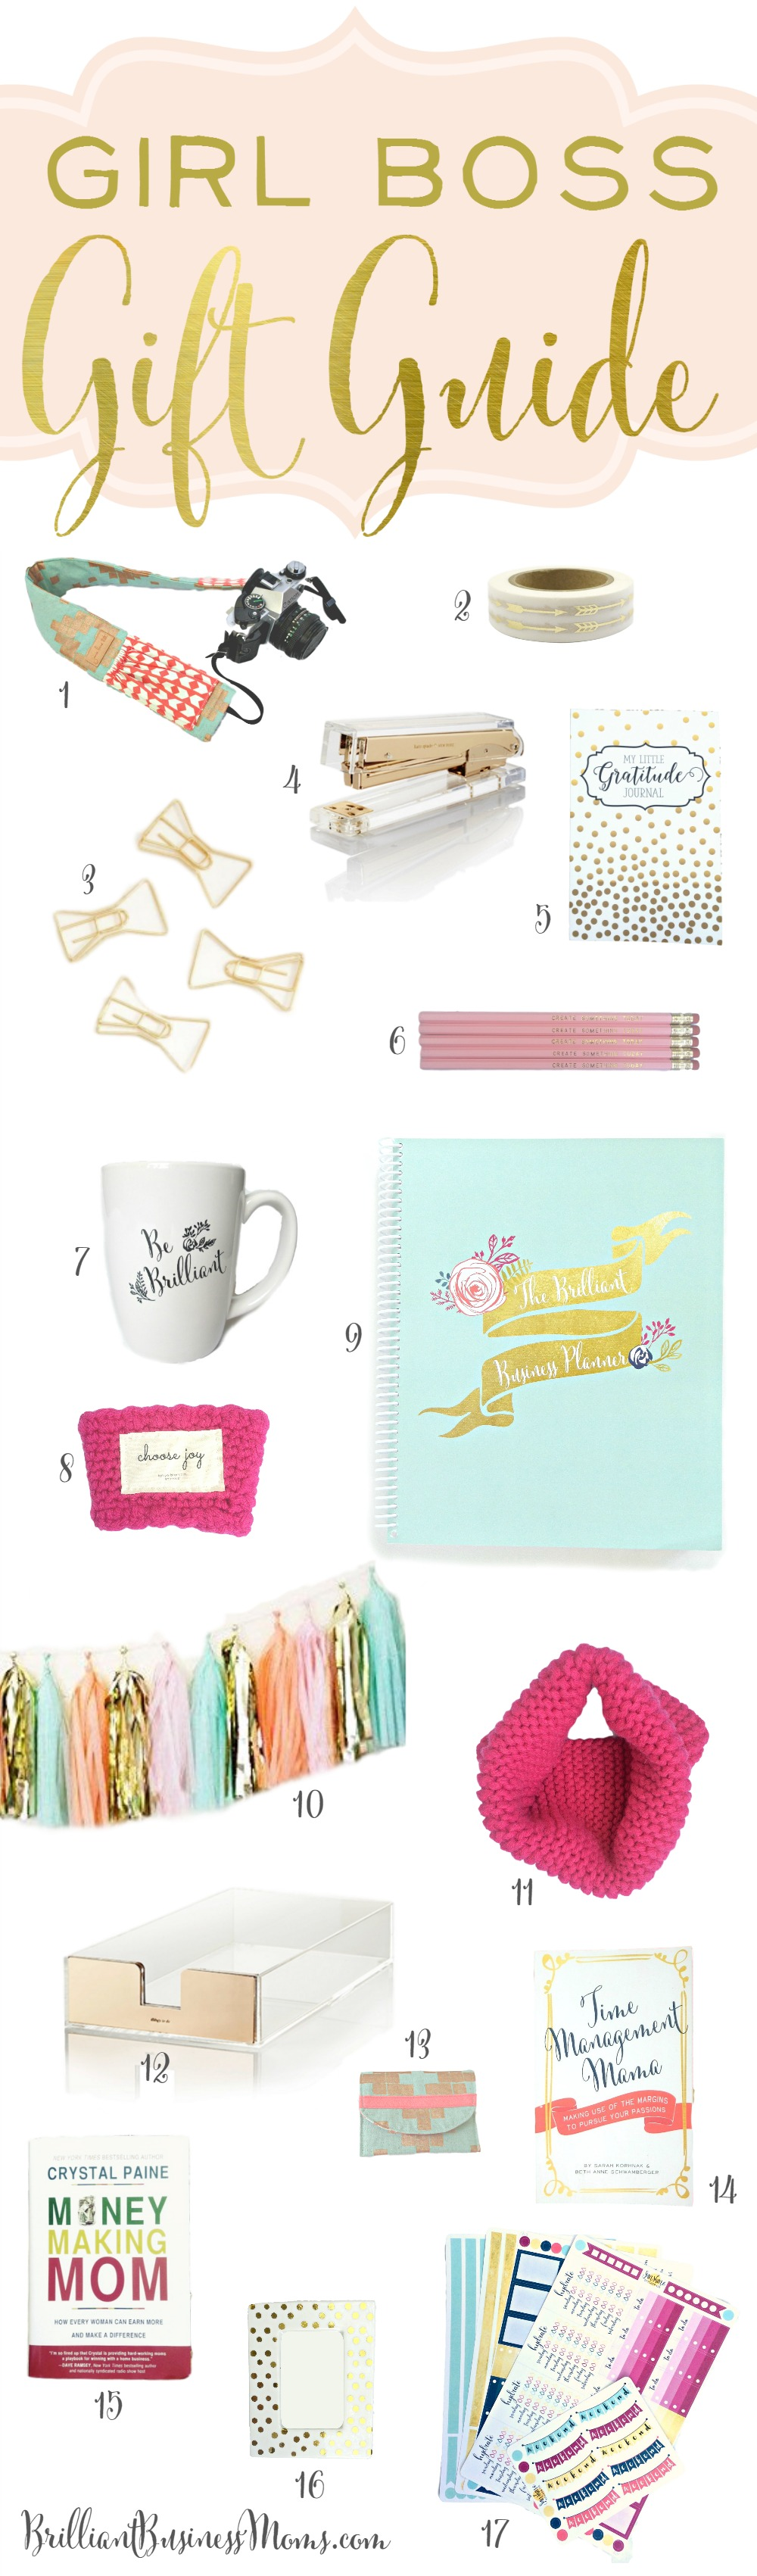 Girl Boss Gift Guide 2016 Great Big Giveaway